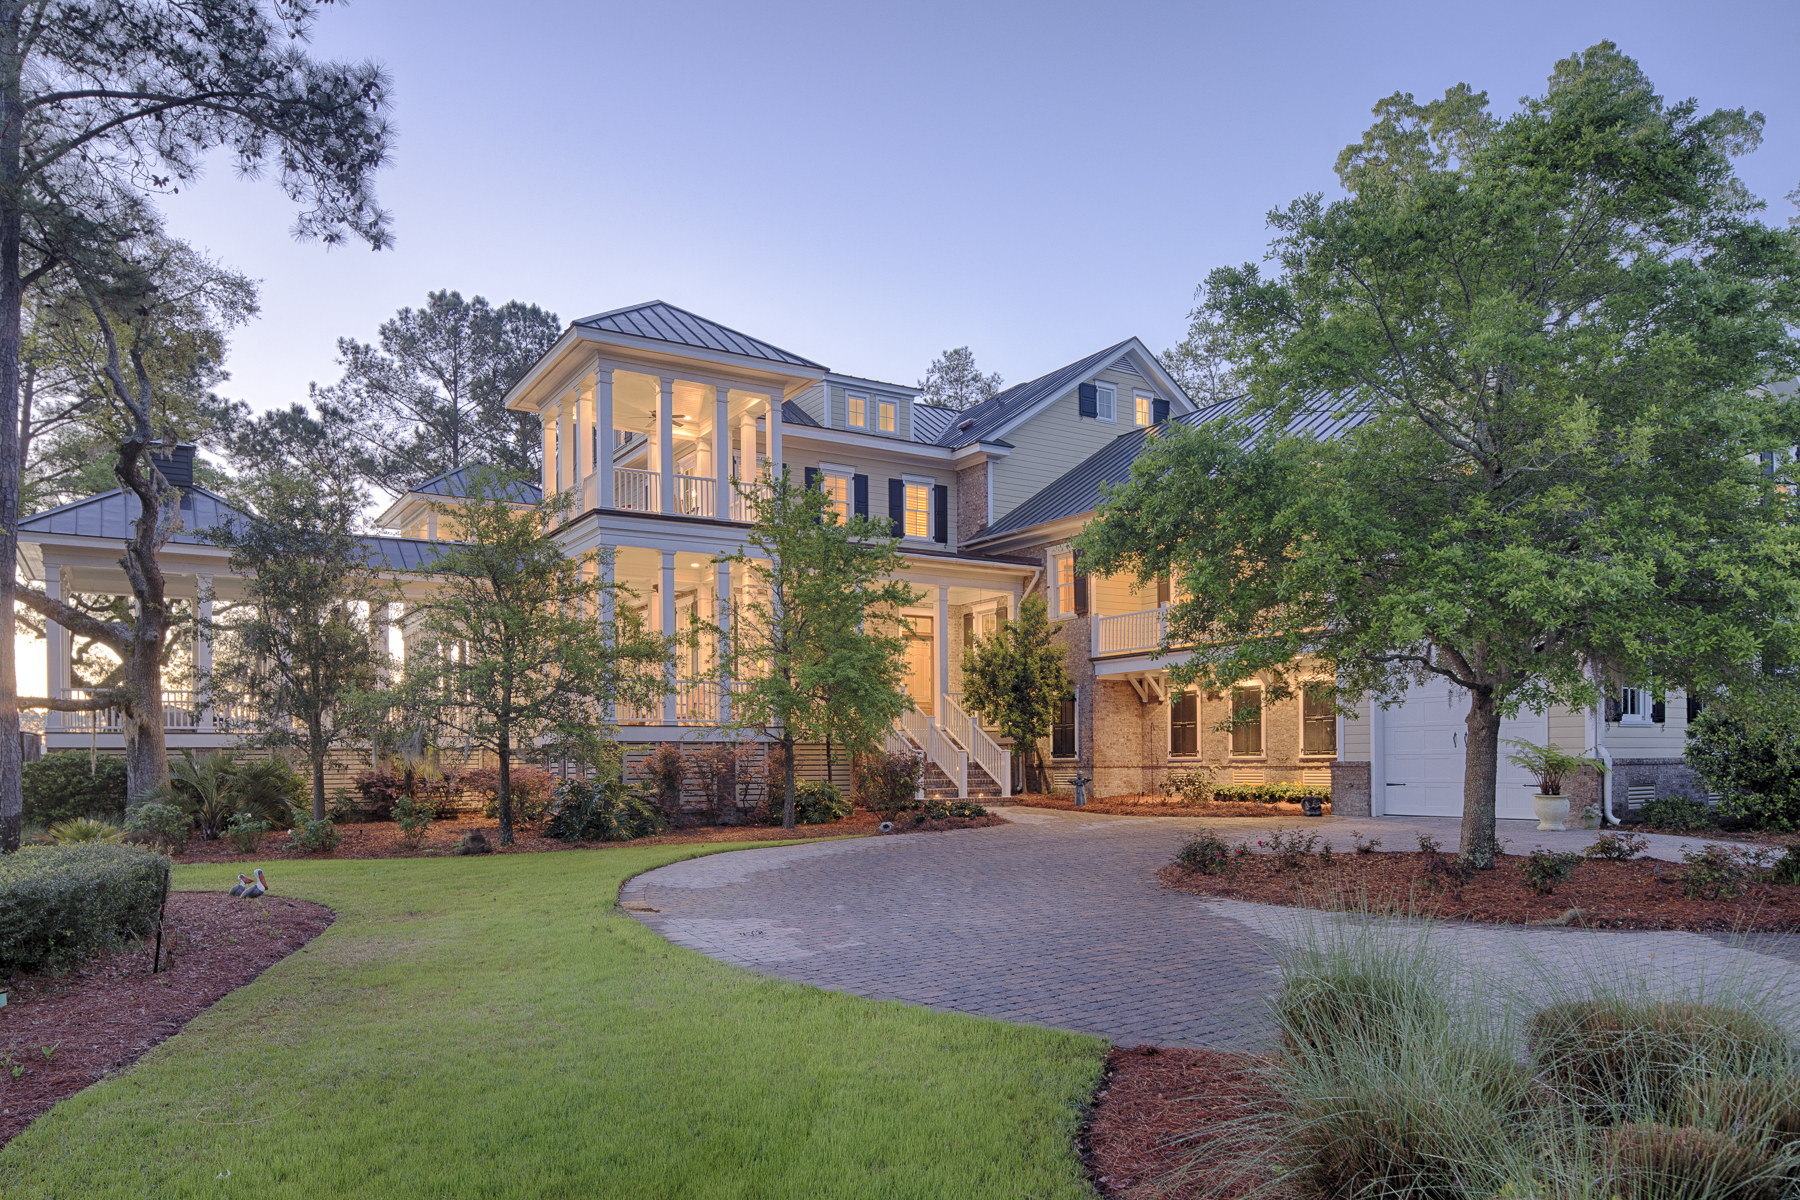 Single Family Home for Sale at 20 Carrier Bluff Bluffton, South Carolina, 29909 United States